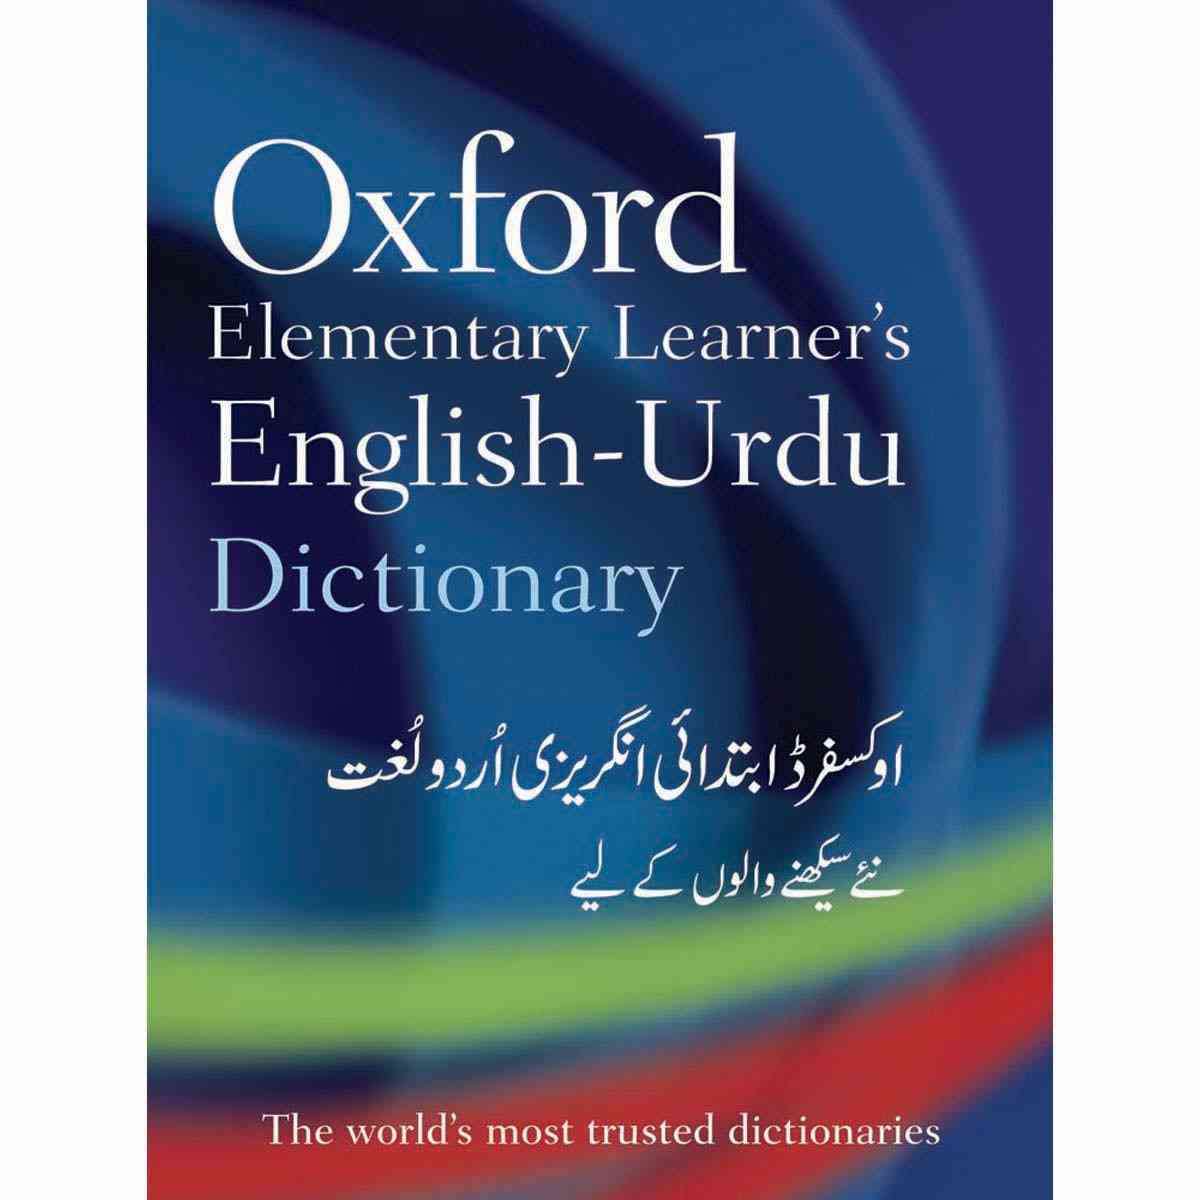 Oxford Elementary Learners English To Urdu Dictionary